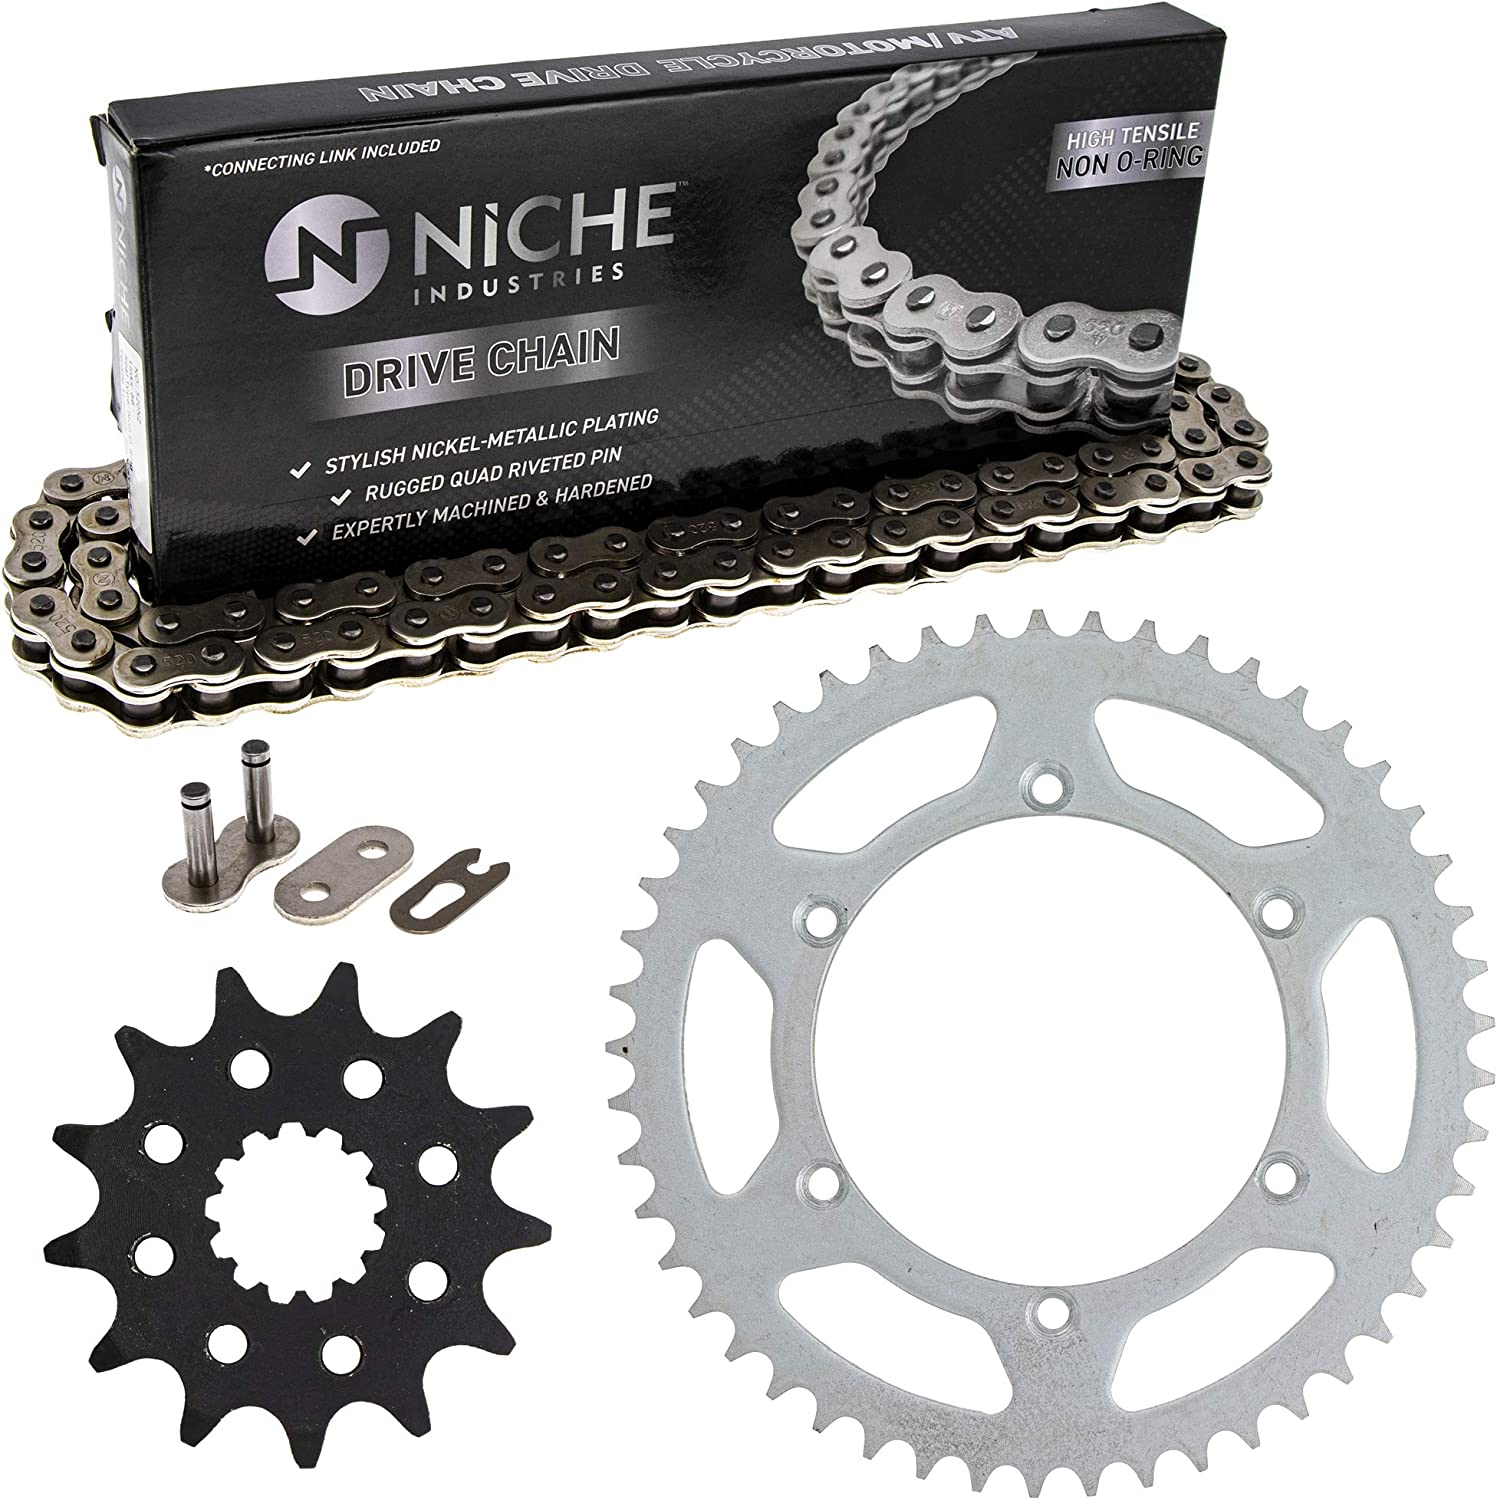 NICHE Drive Sprocket Chain Combo for 2002-2005 Kawasaki KX250 Front 13 Rear 49 Tooth 520V O-Ring 114 Links